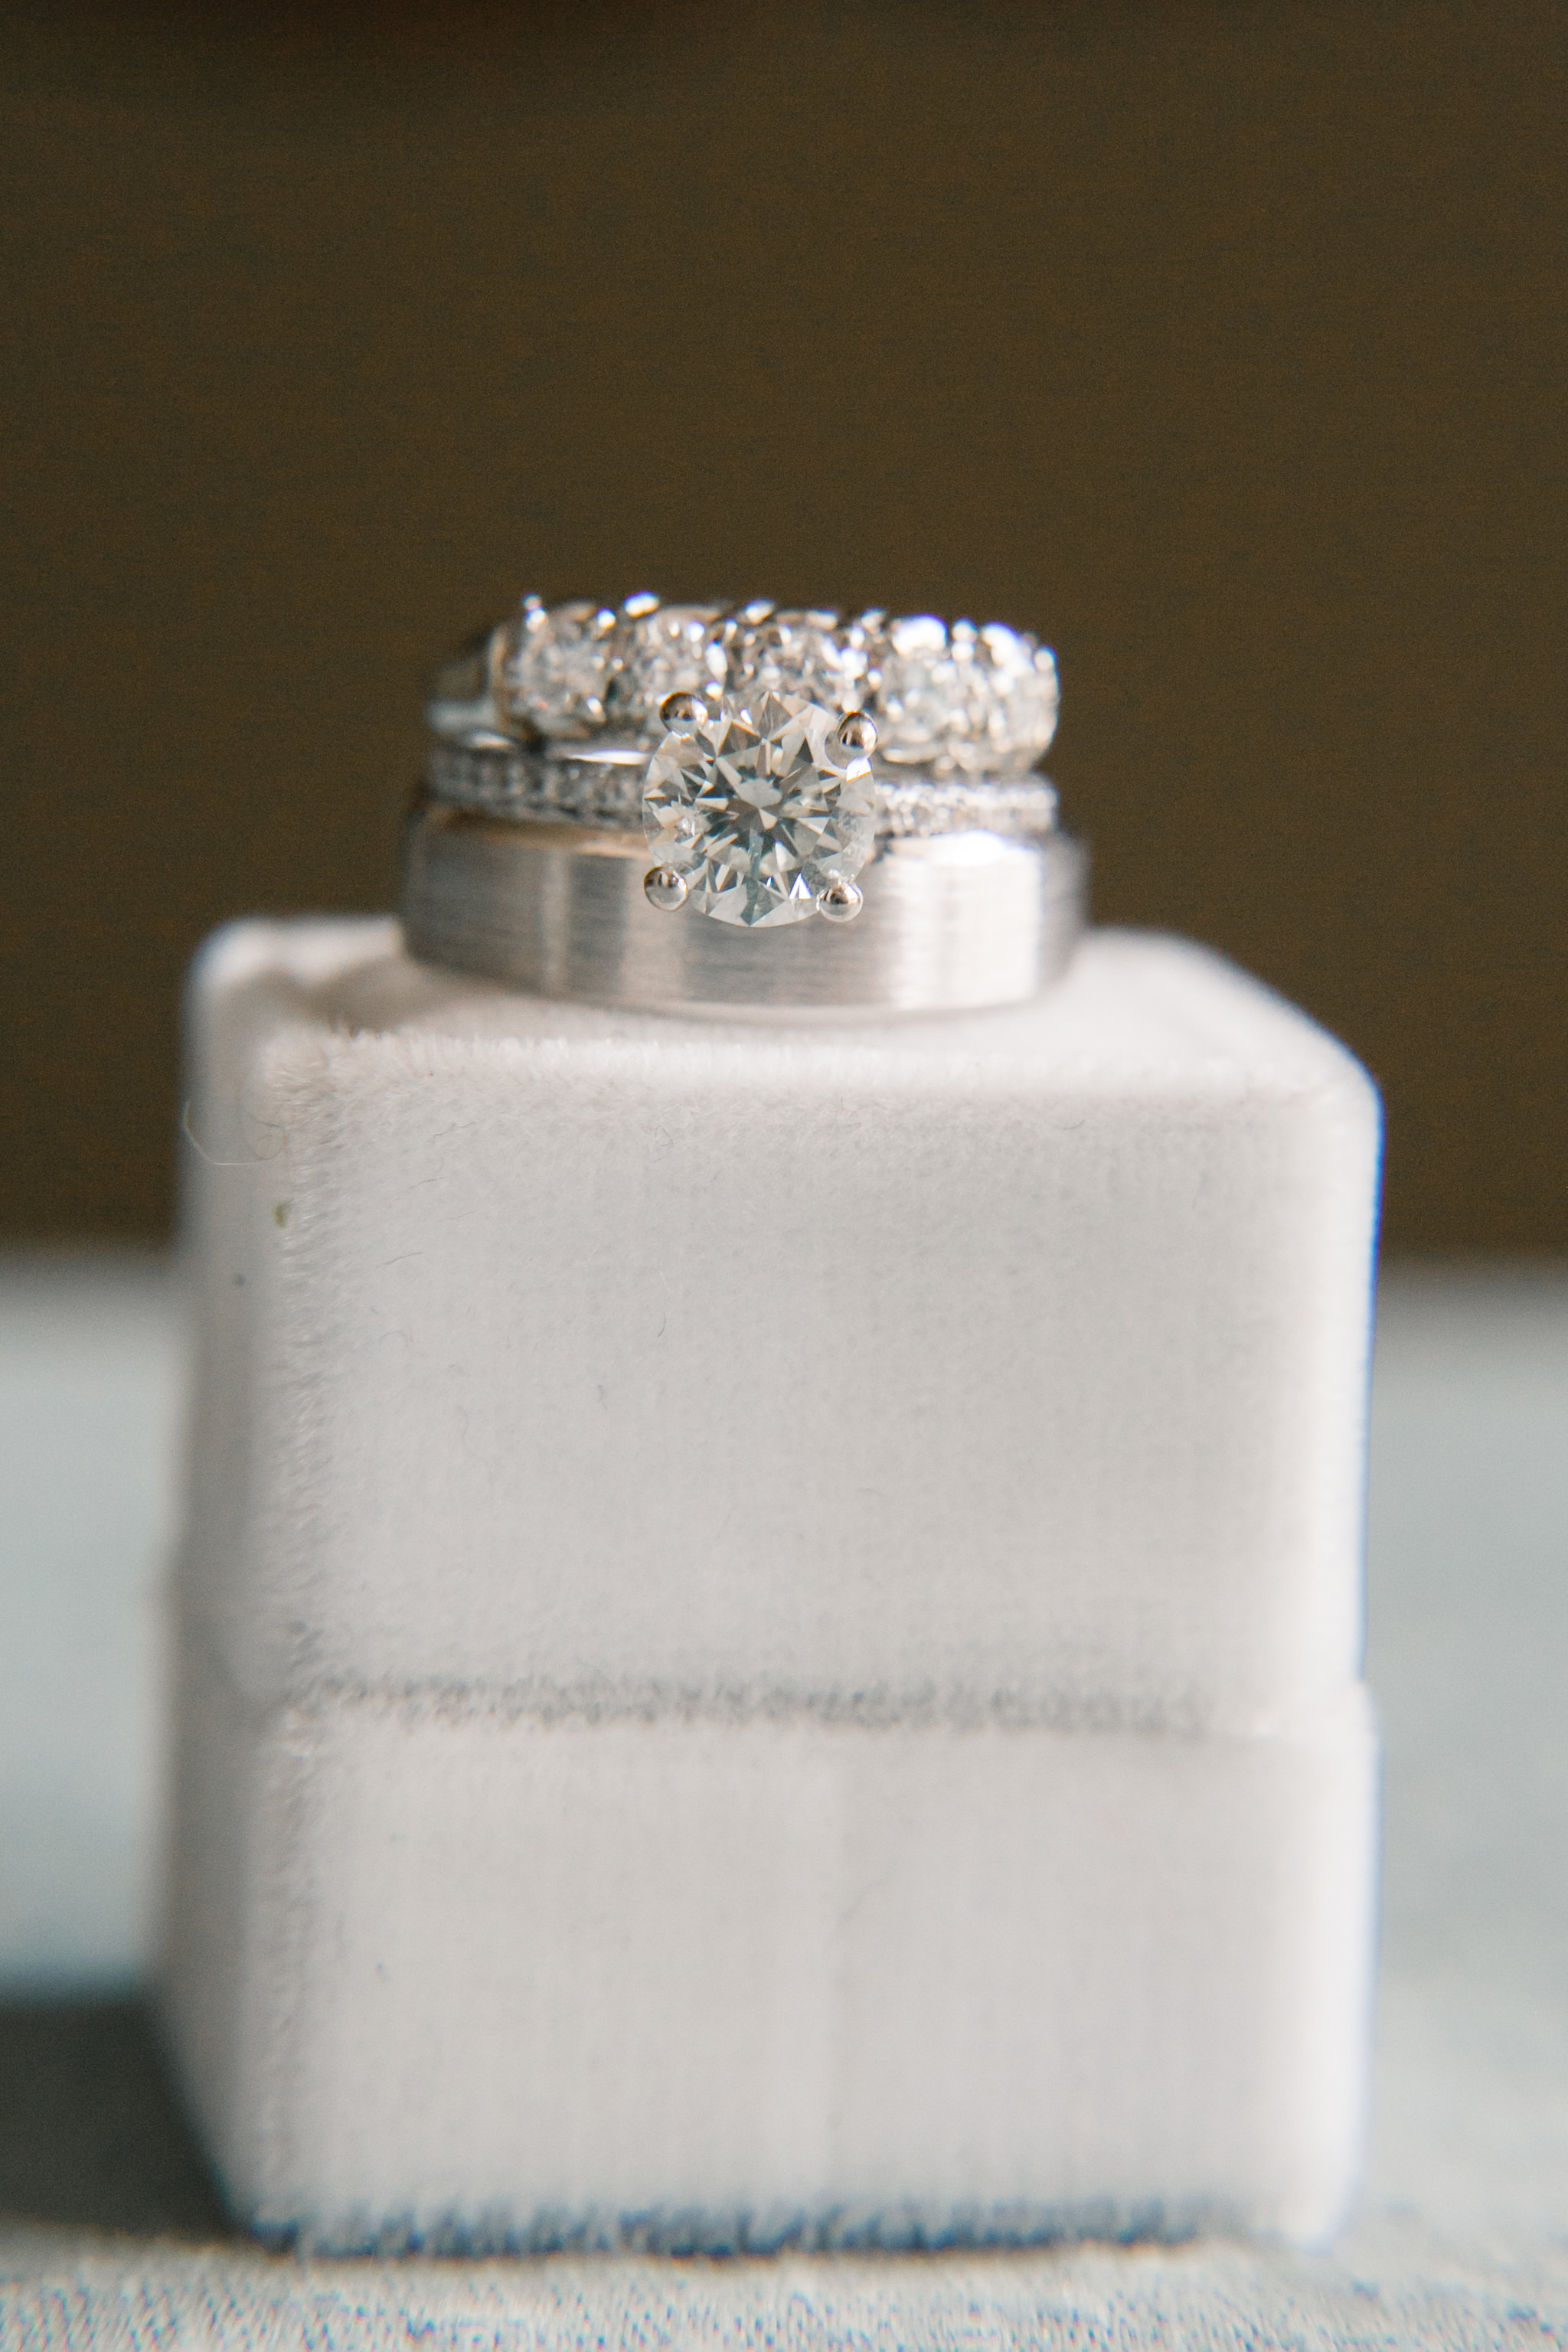 Solitaire diamond engagement ring with wedding bands